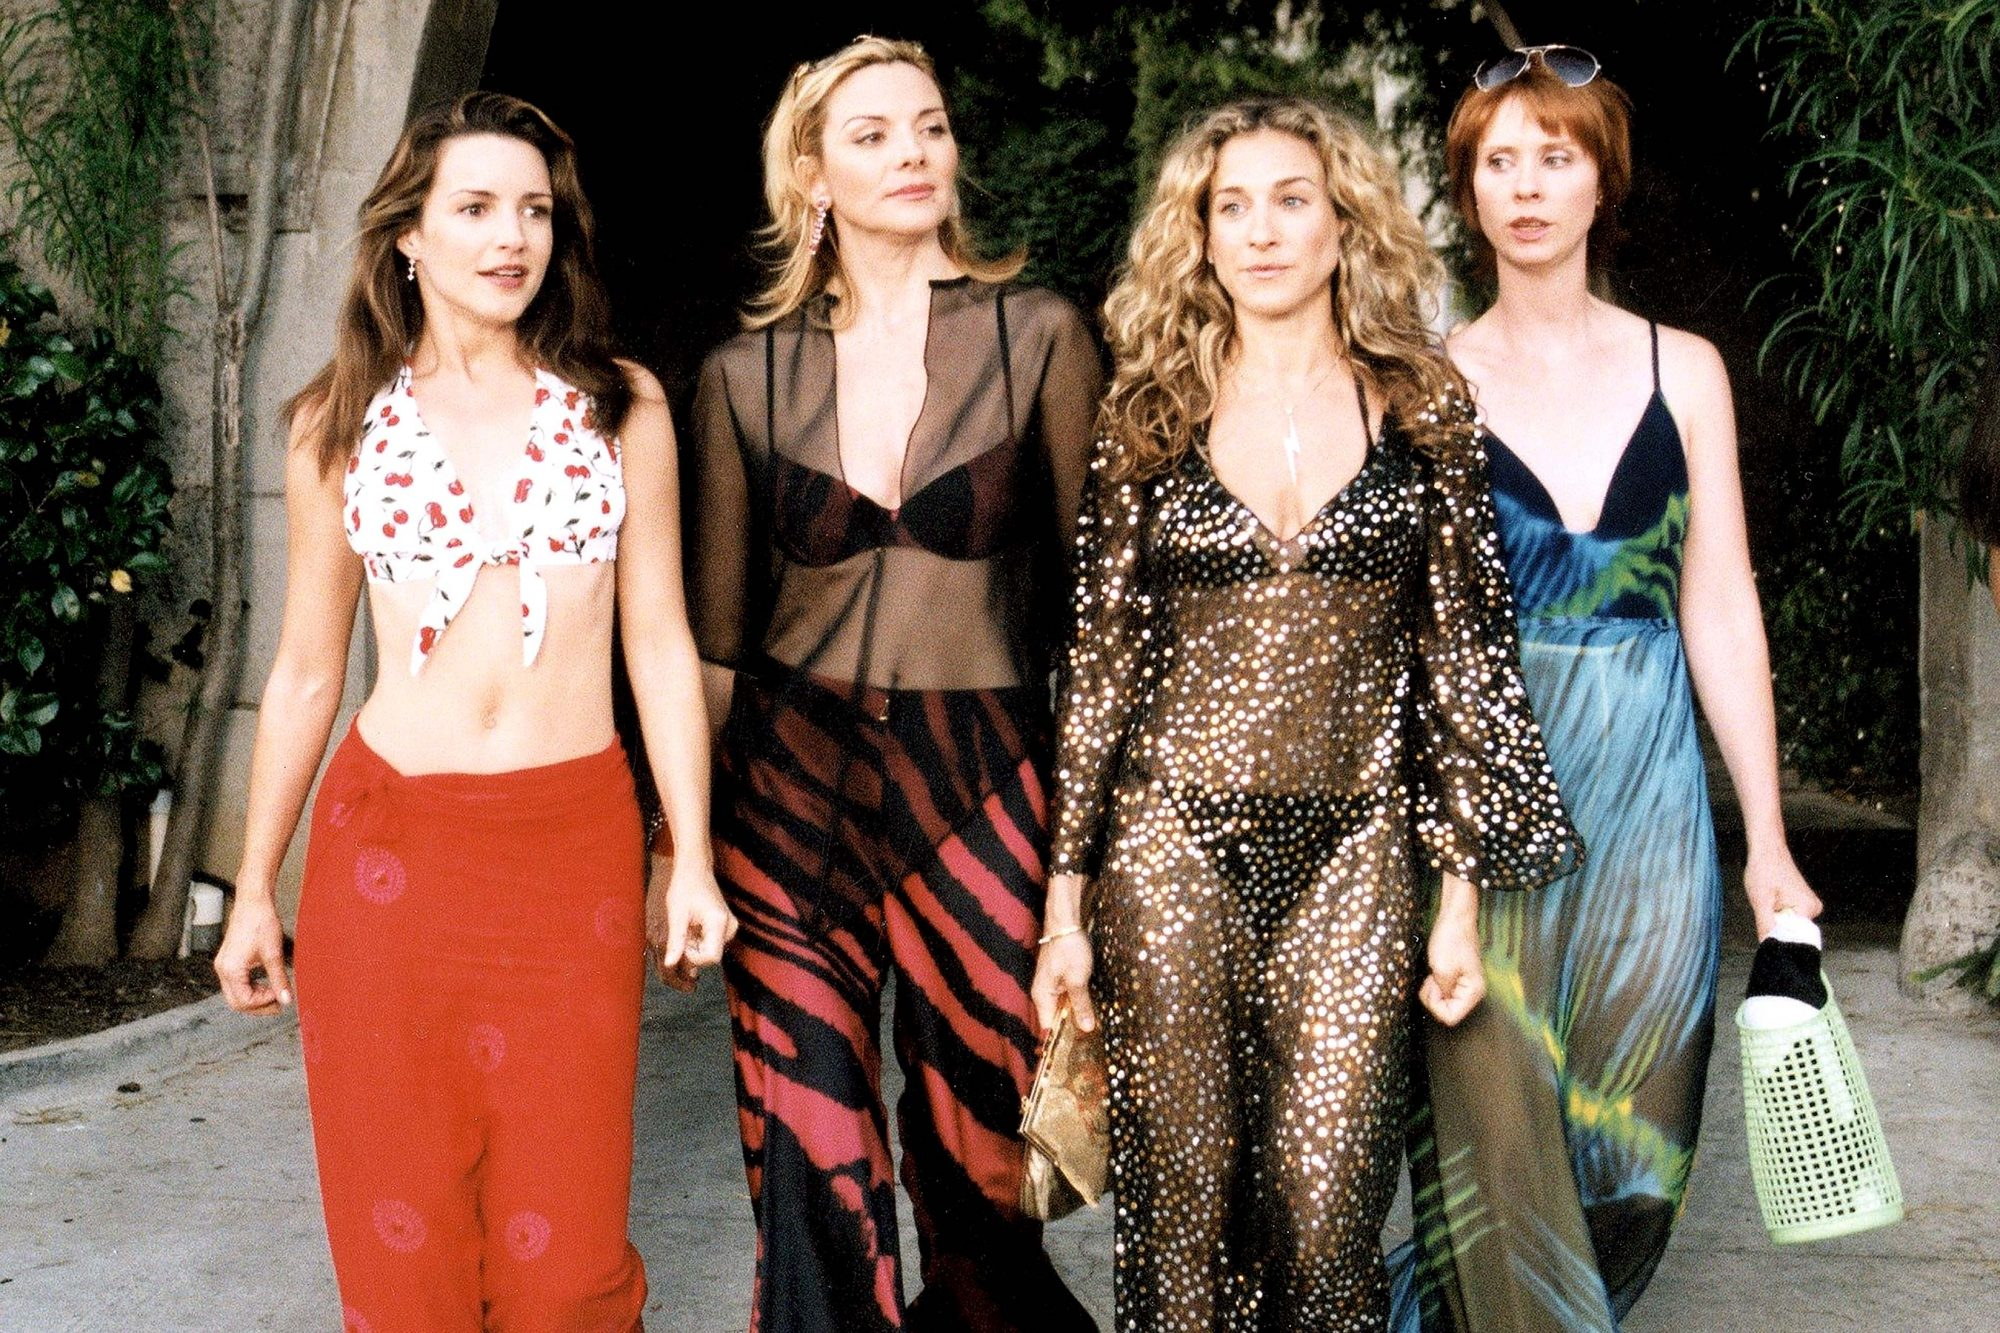 SEX AND THE CITY, (Season 3), Kristin Davis, Kim Cattrall, Sarah Jessica Parker, Cynthia Nixon, 1998